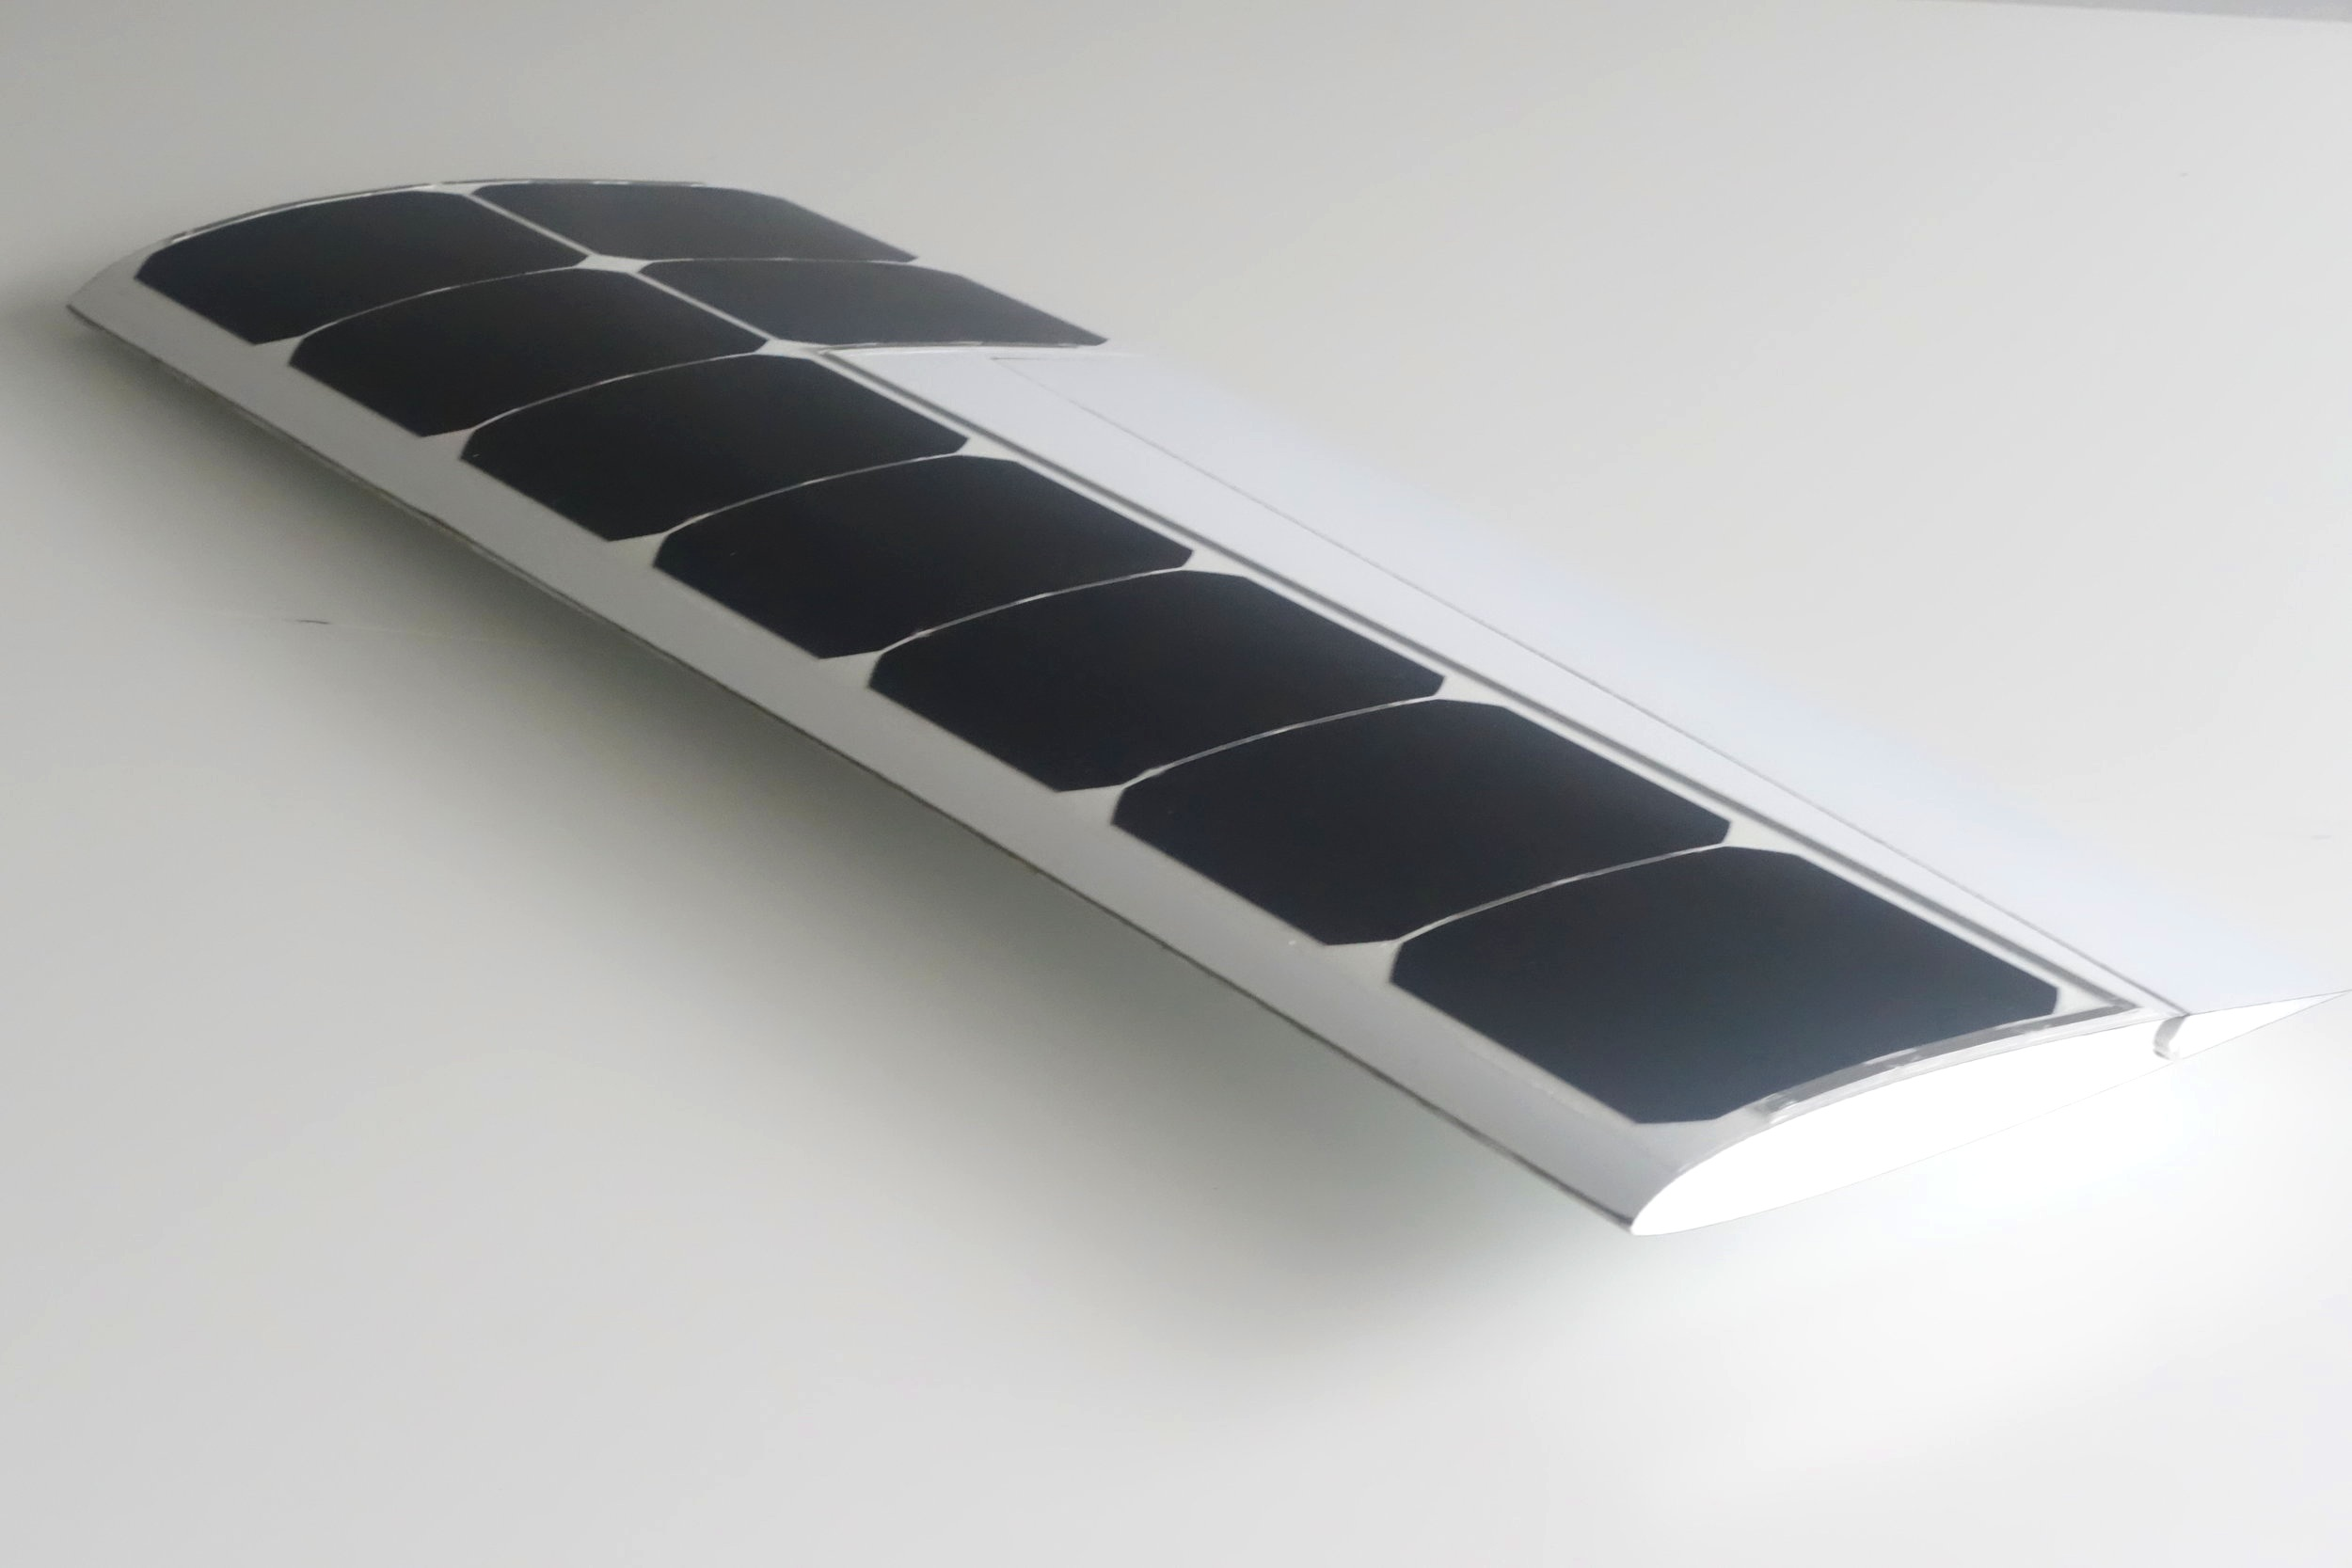 Ease your operations with a turnkey technology - Our 100W solar wing is a ready-to-use technology. You will be able to integrate it on your UAV as soon as you'll receive it. All the connectors and servos are already mounted. The solar cells are smoothly integrated on the upper surface. You only have to plug the wing to your power system and your drone will never be the same !